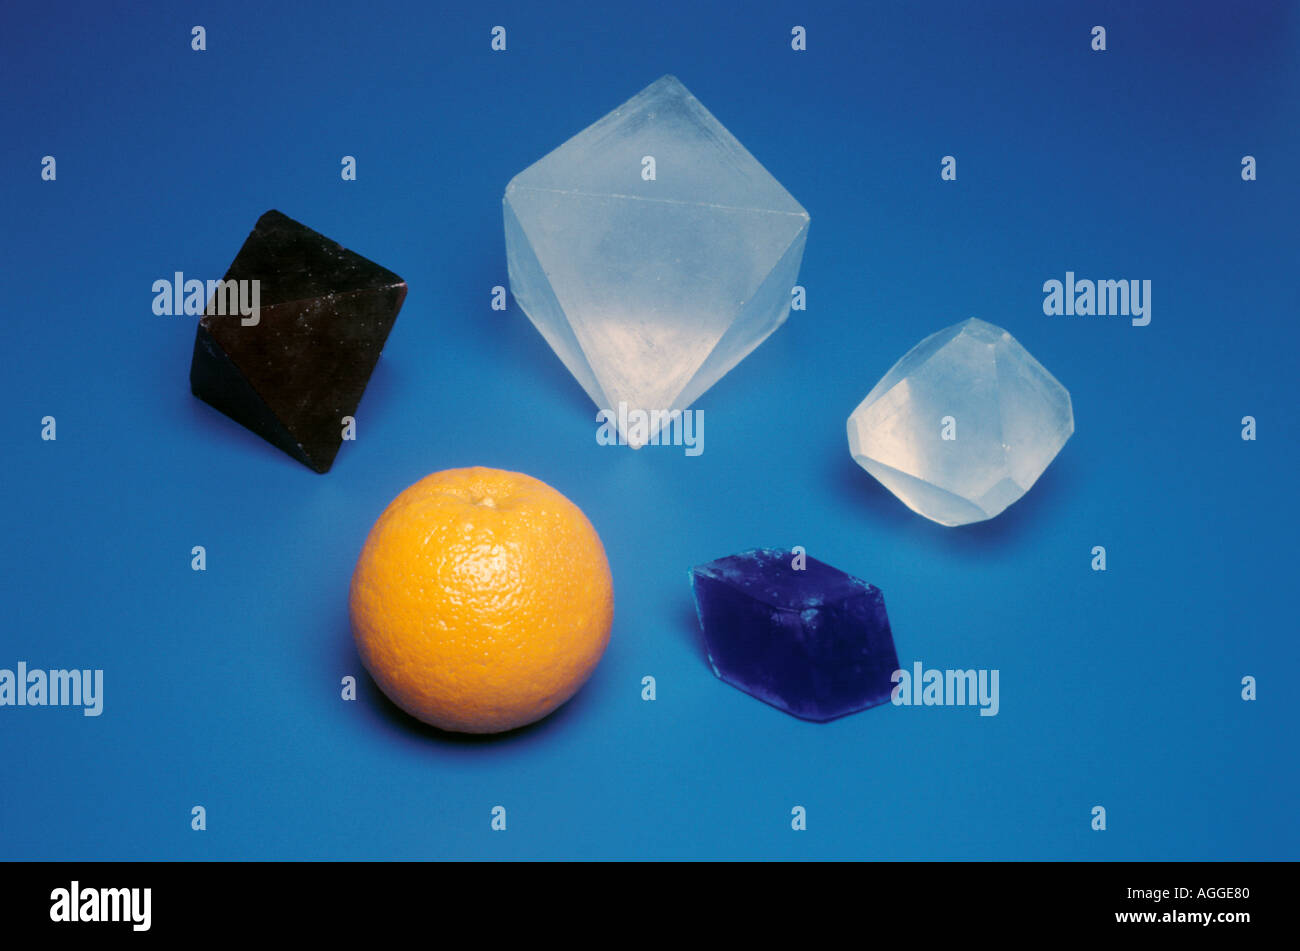 crystals as big as oranges Stock Photo